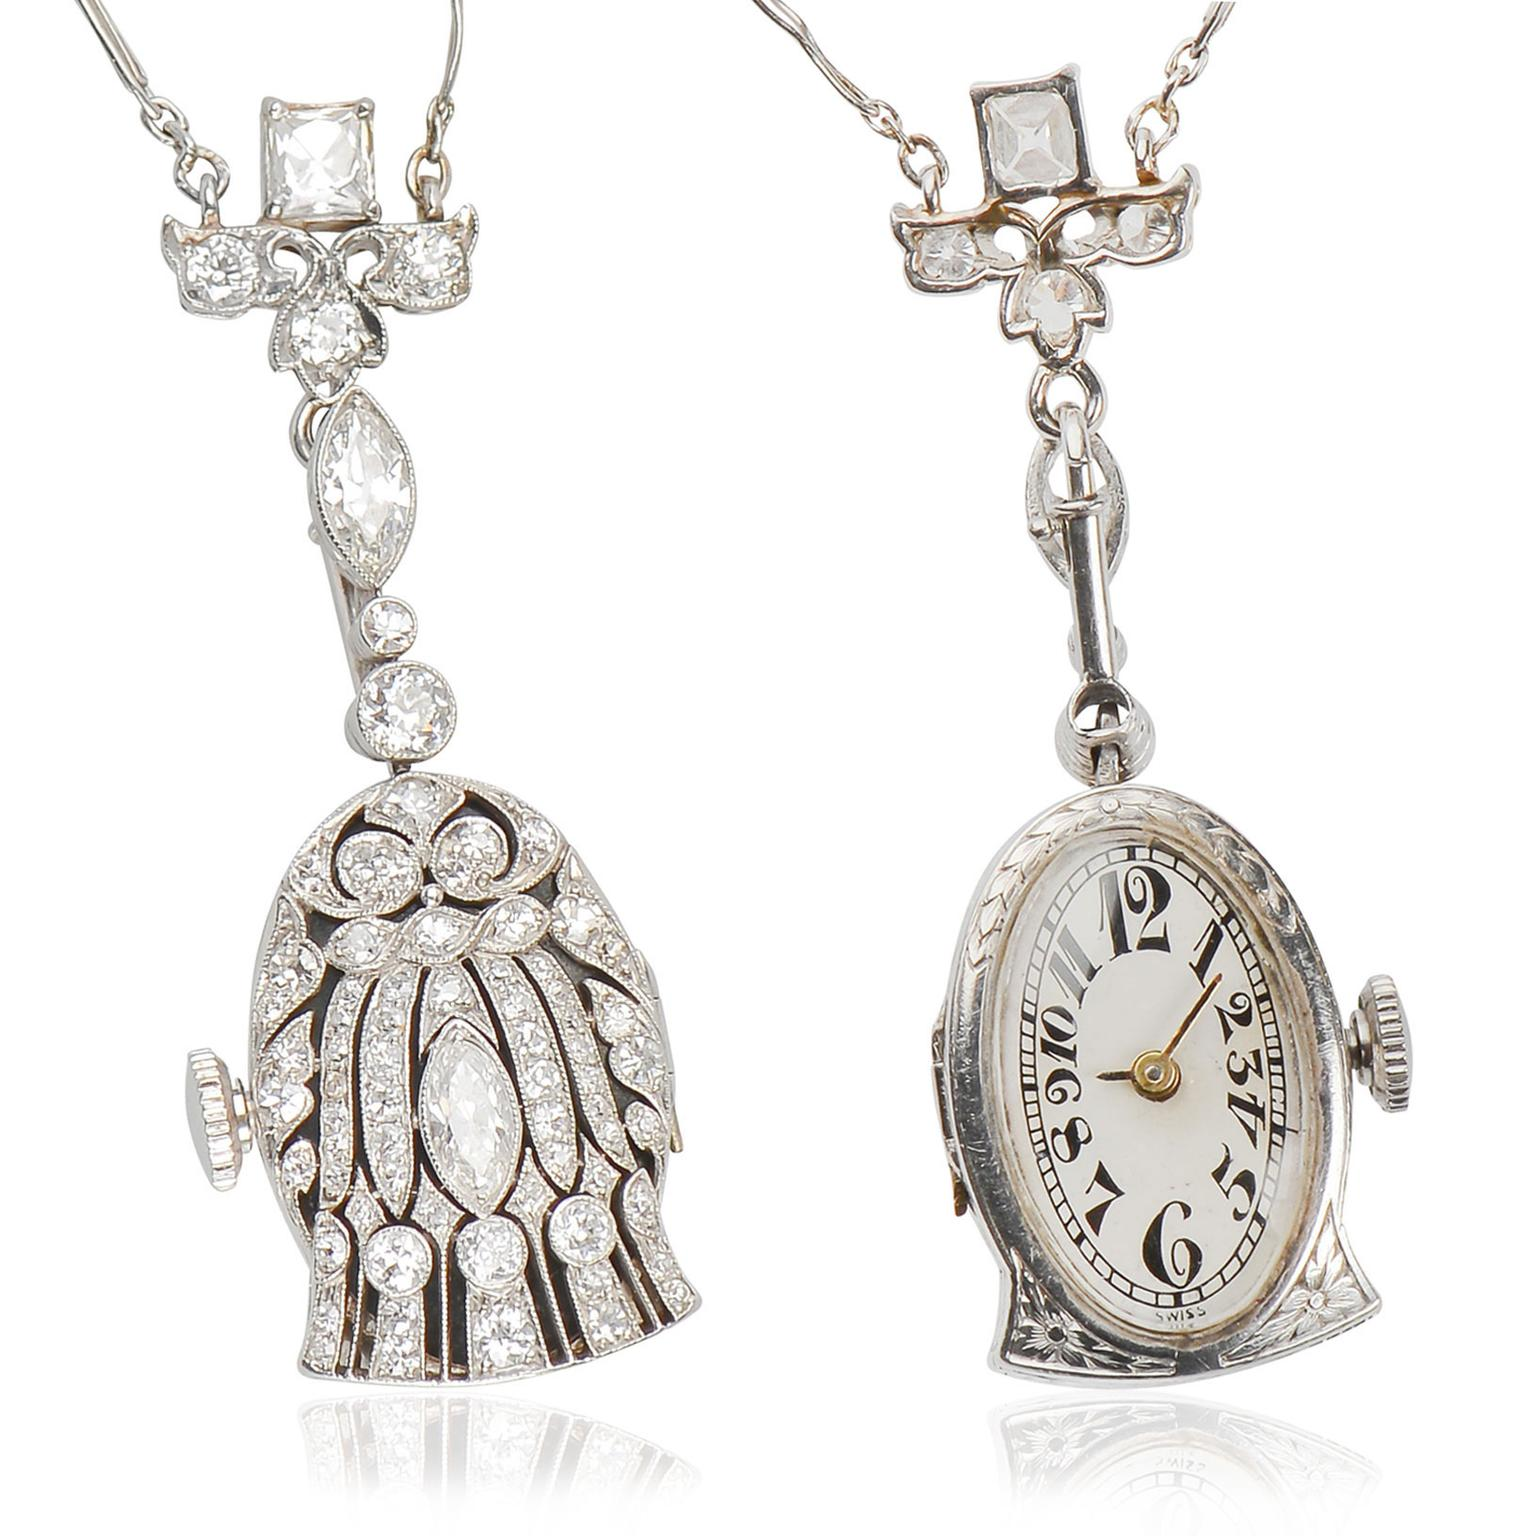 The Three Graces watch pendant